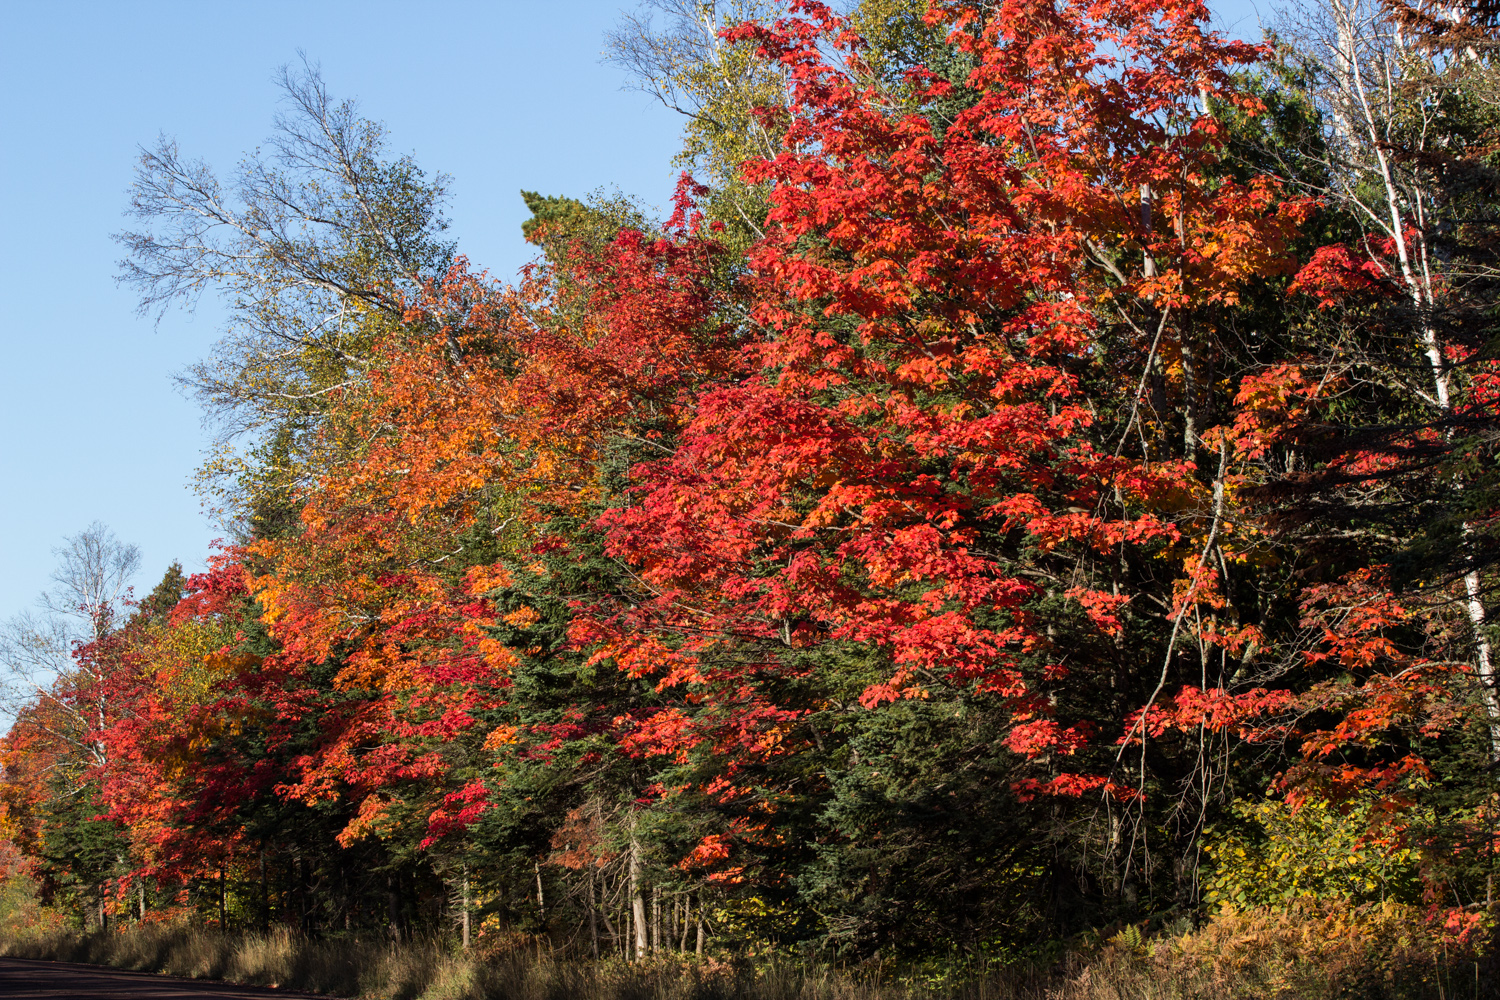 A nice row of maple trees along the dirt road